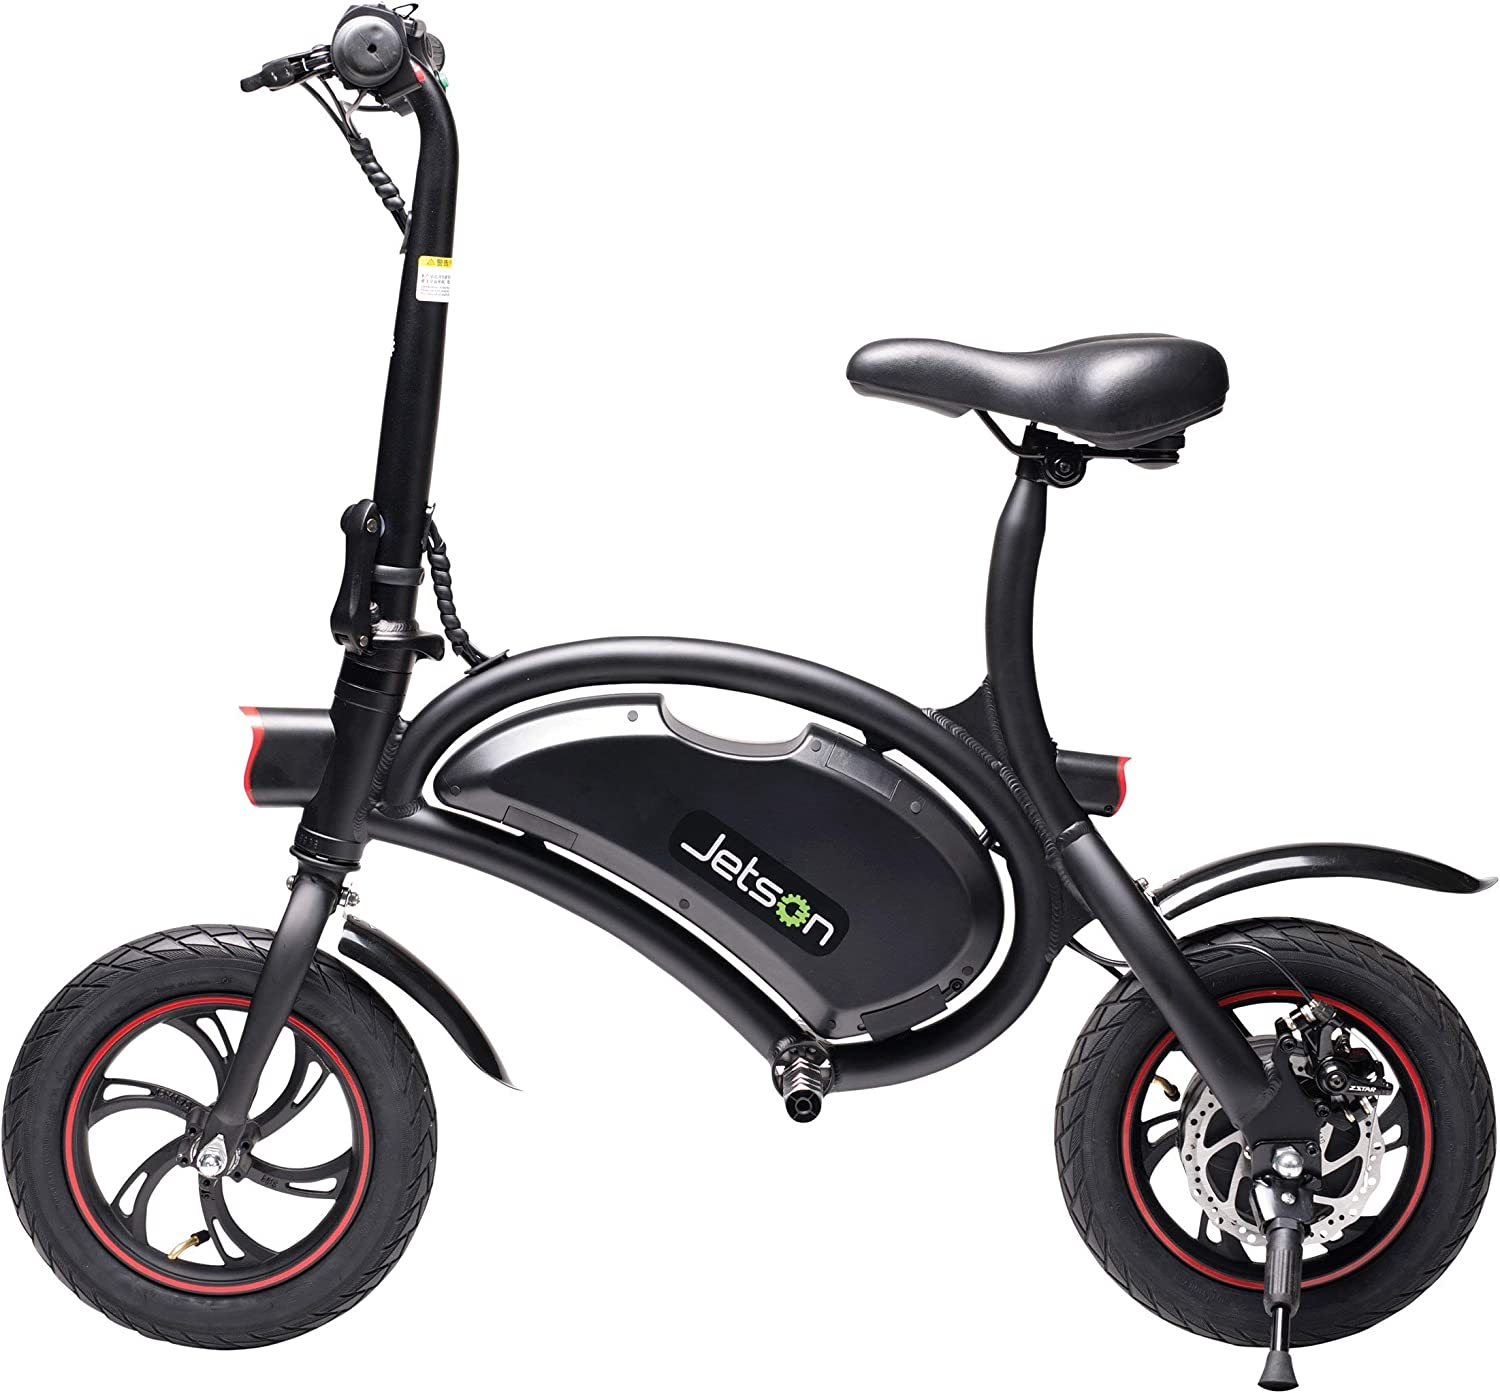 Jetson Electric Bike Bolt Folding Electric Bike with LCD Display, Lightweight Portable with Carrying Handle, for Adults Teens